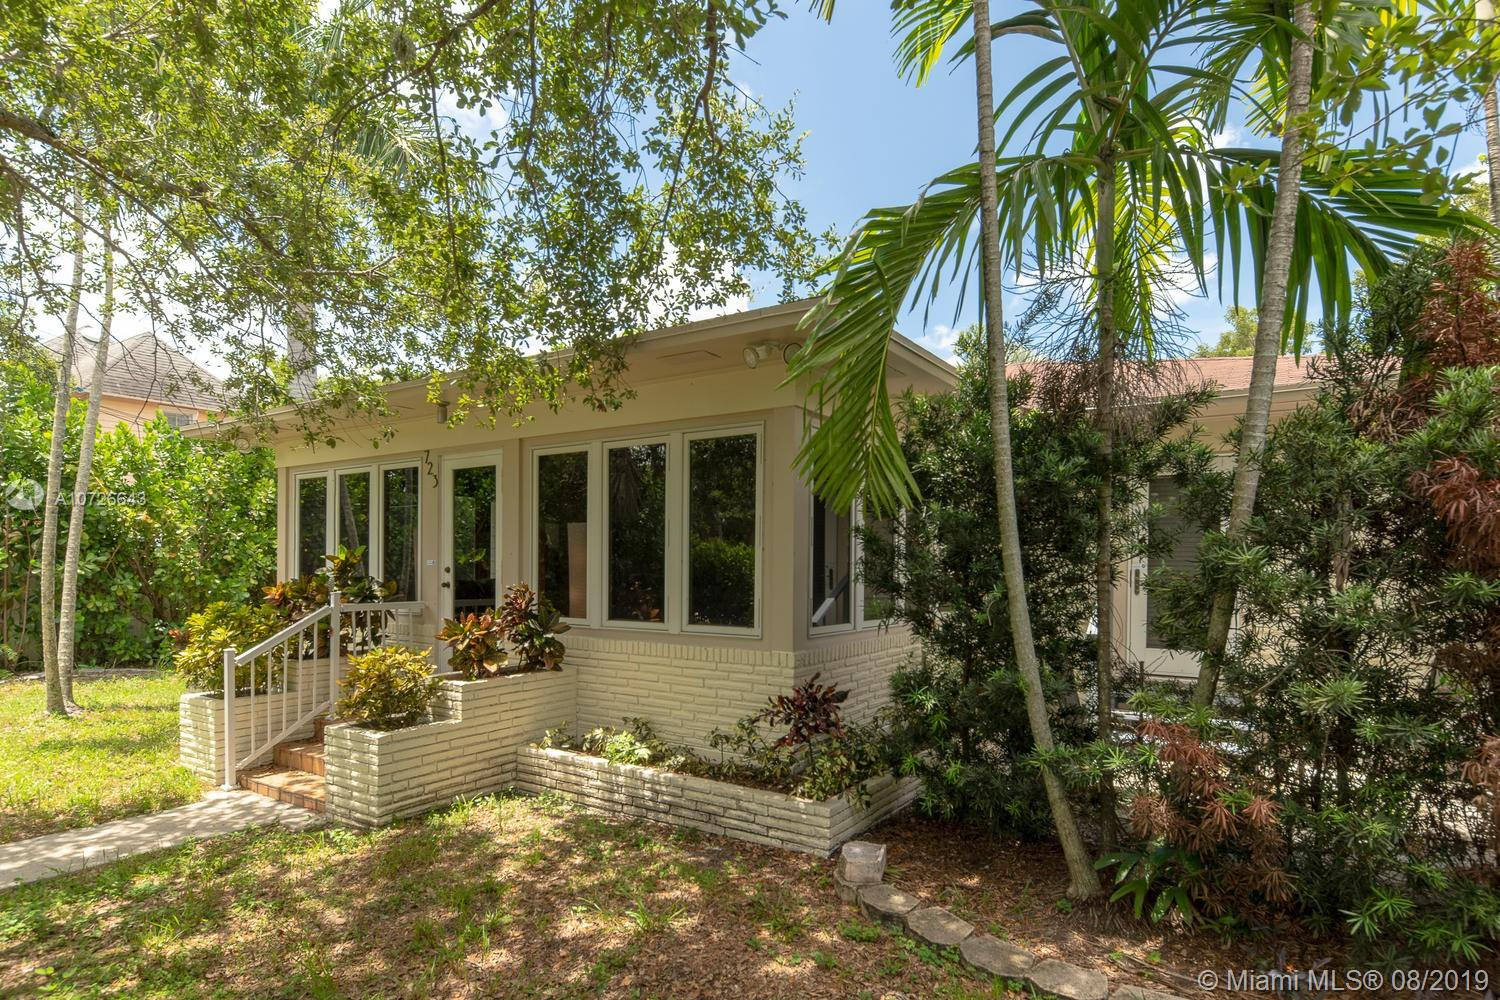 Amazing downtown/Sailboat Bend location! 11,000+ SQ FT lot.  Main House approximately 2000 sq ft 3 bedrooms & 2 bathroom. Separate detached garage approx. +900 sf laundry/bonus room. No HOA restrictions - park multiple cars. Over 1/4 acre lot w/ room for pool. Miami-Dade Approved Hurricane Impact Windows and Doors. New porcelain tile floors. Walk to Himmarshee Historic District's shops and restaurants, Las Olas Riverfront, & Cooley's Landing Marine Facility.